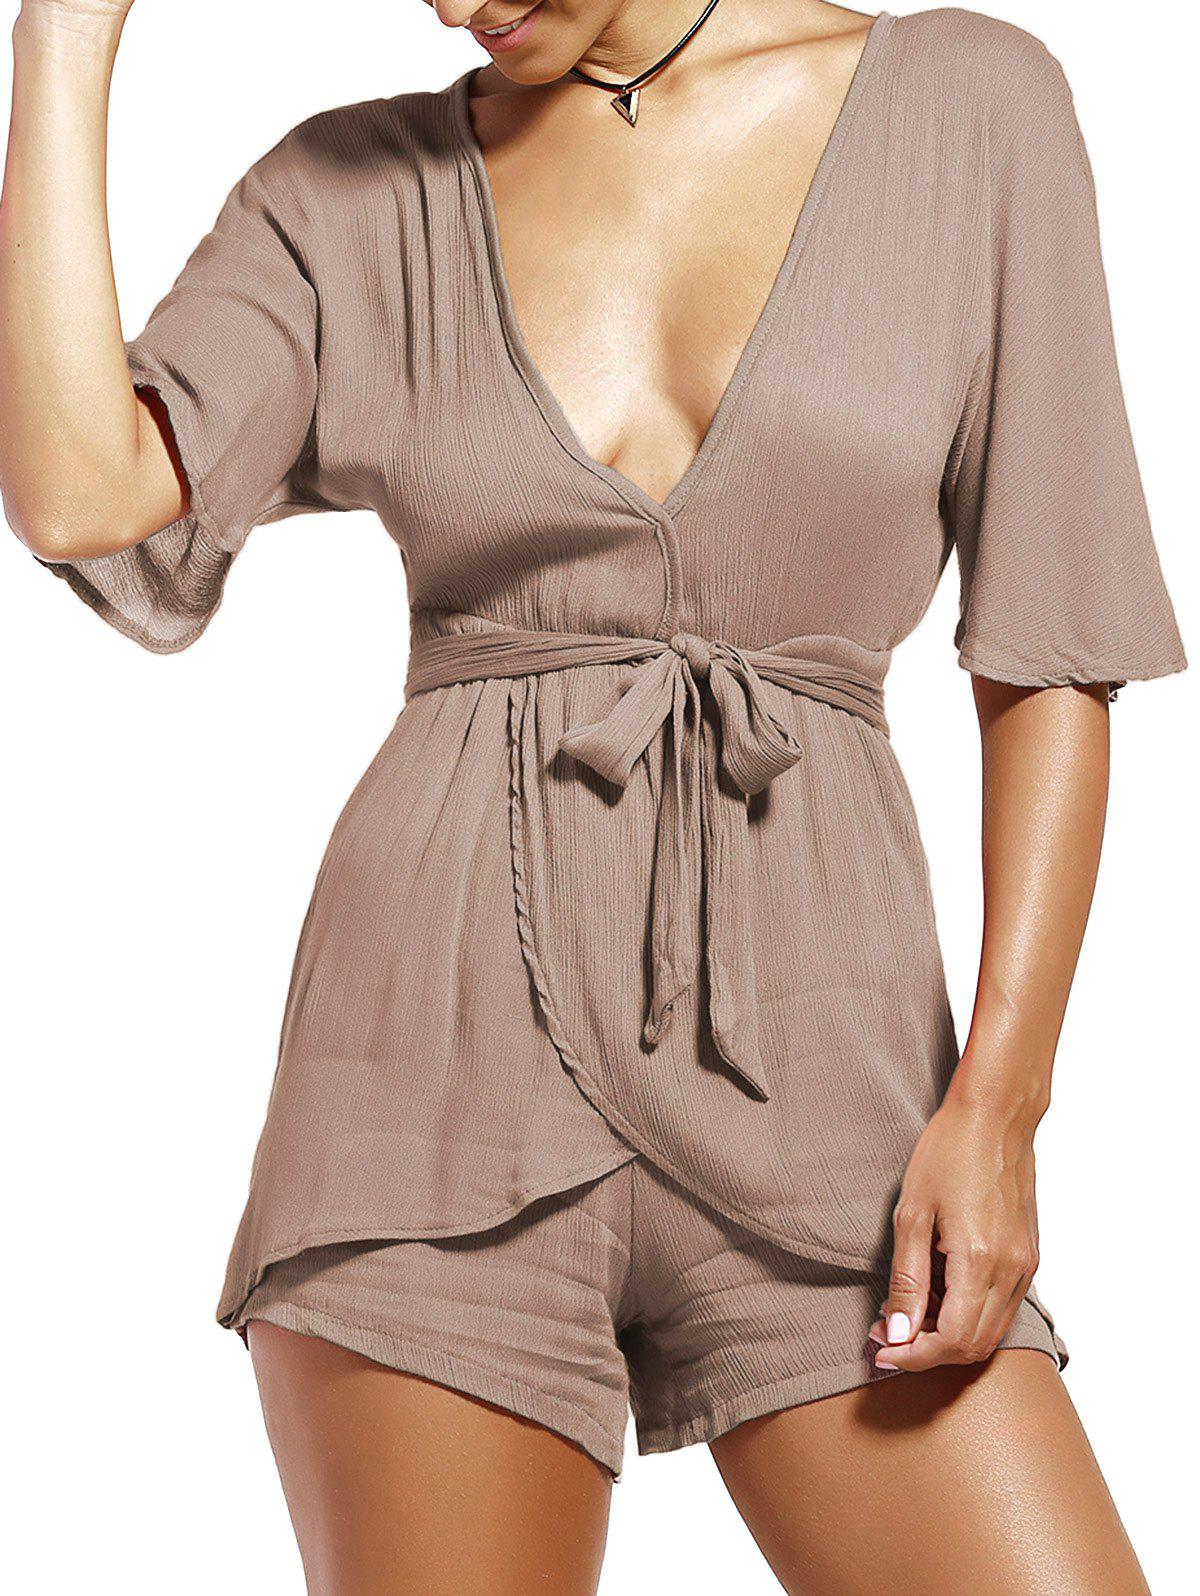 Belt Plunging Neckline Wrap Romper - LIGHT BROWN XL